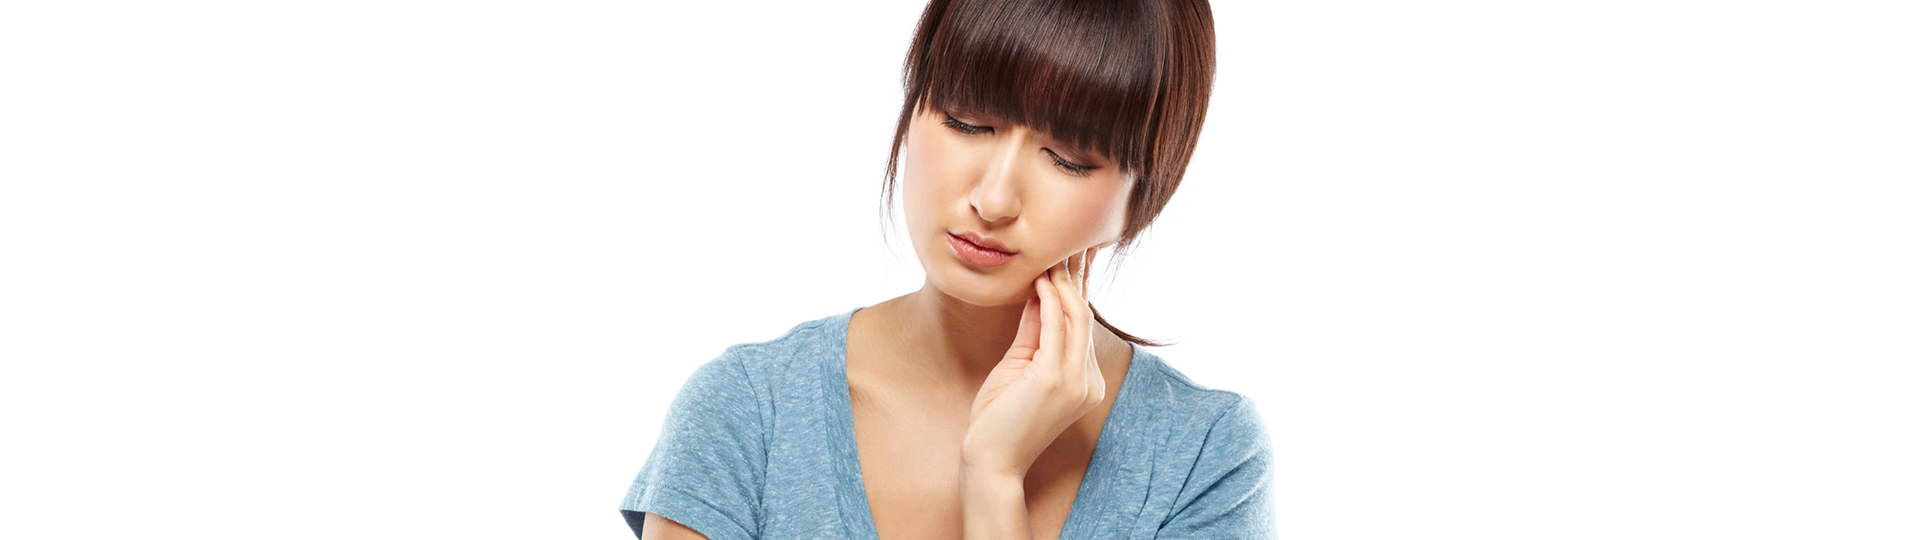 Temporomandibular Joint Syndrome